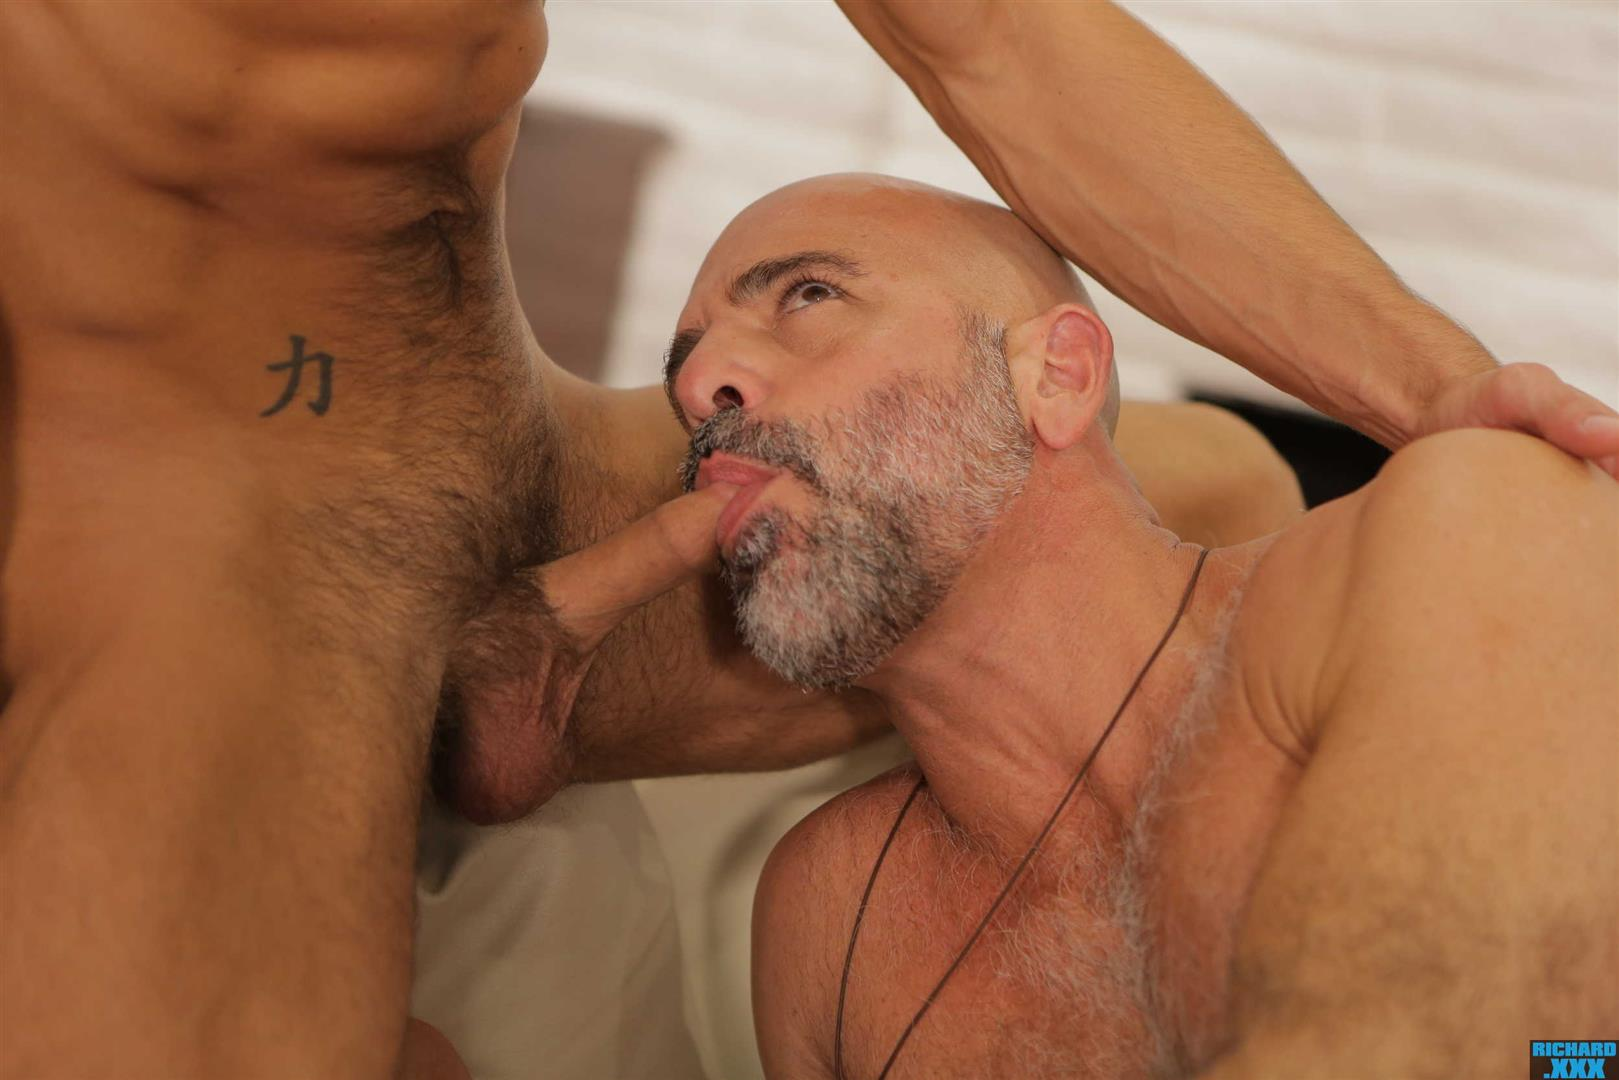 Richard-XXX-Adam-Russo-and-Casey-Everett-Muscle-Daddy-Thick-Dick-Bareback-Video-12 Hairy Muscle Daddy Adam Russo Bareback Fucking Casey Everett